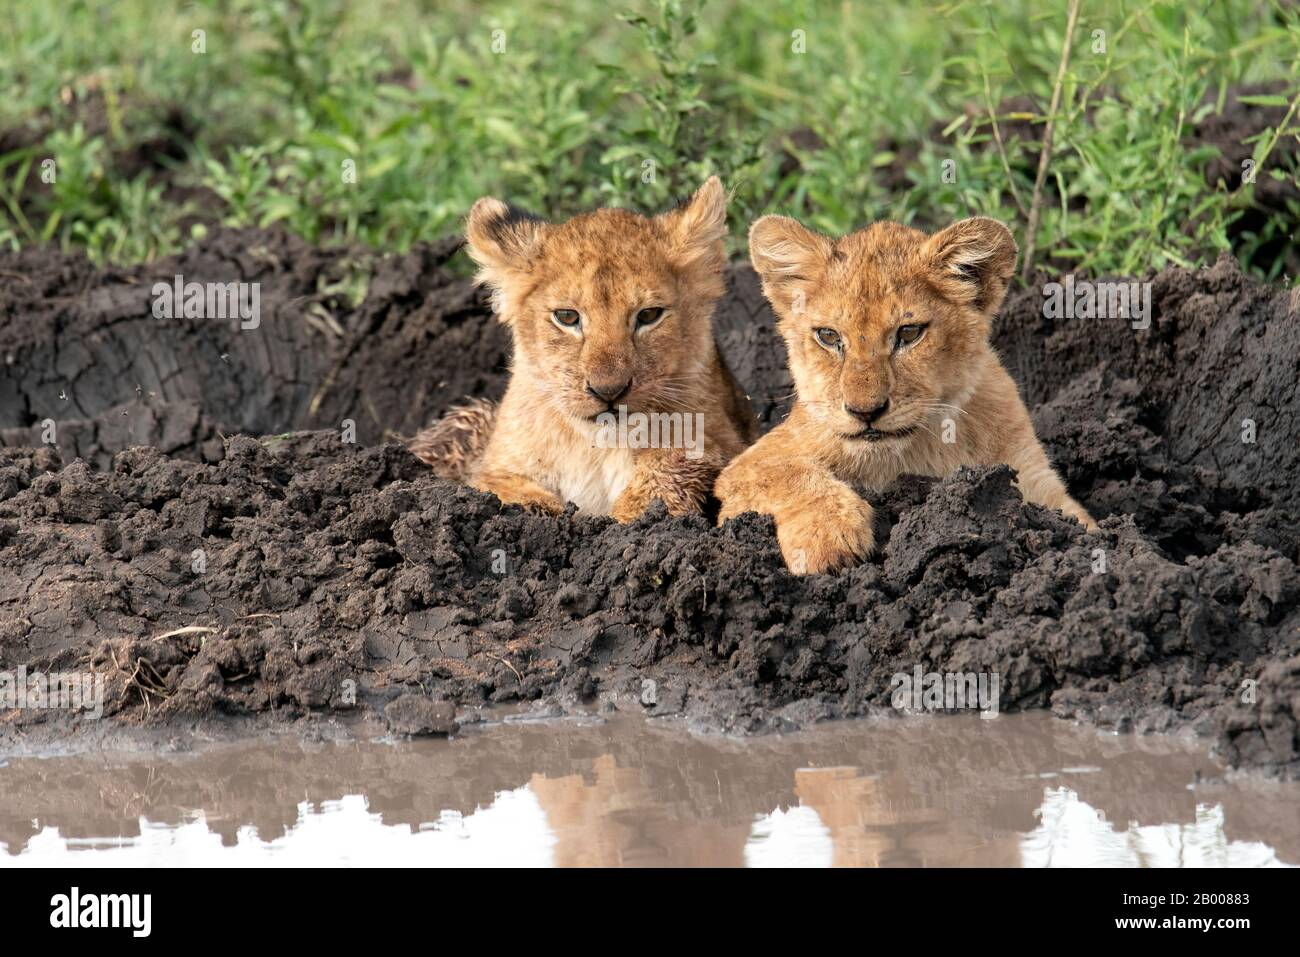 Lions cubs resting in the mud of the Serengeti Stock Photo